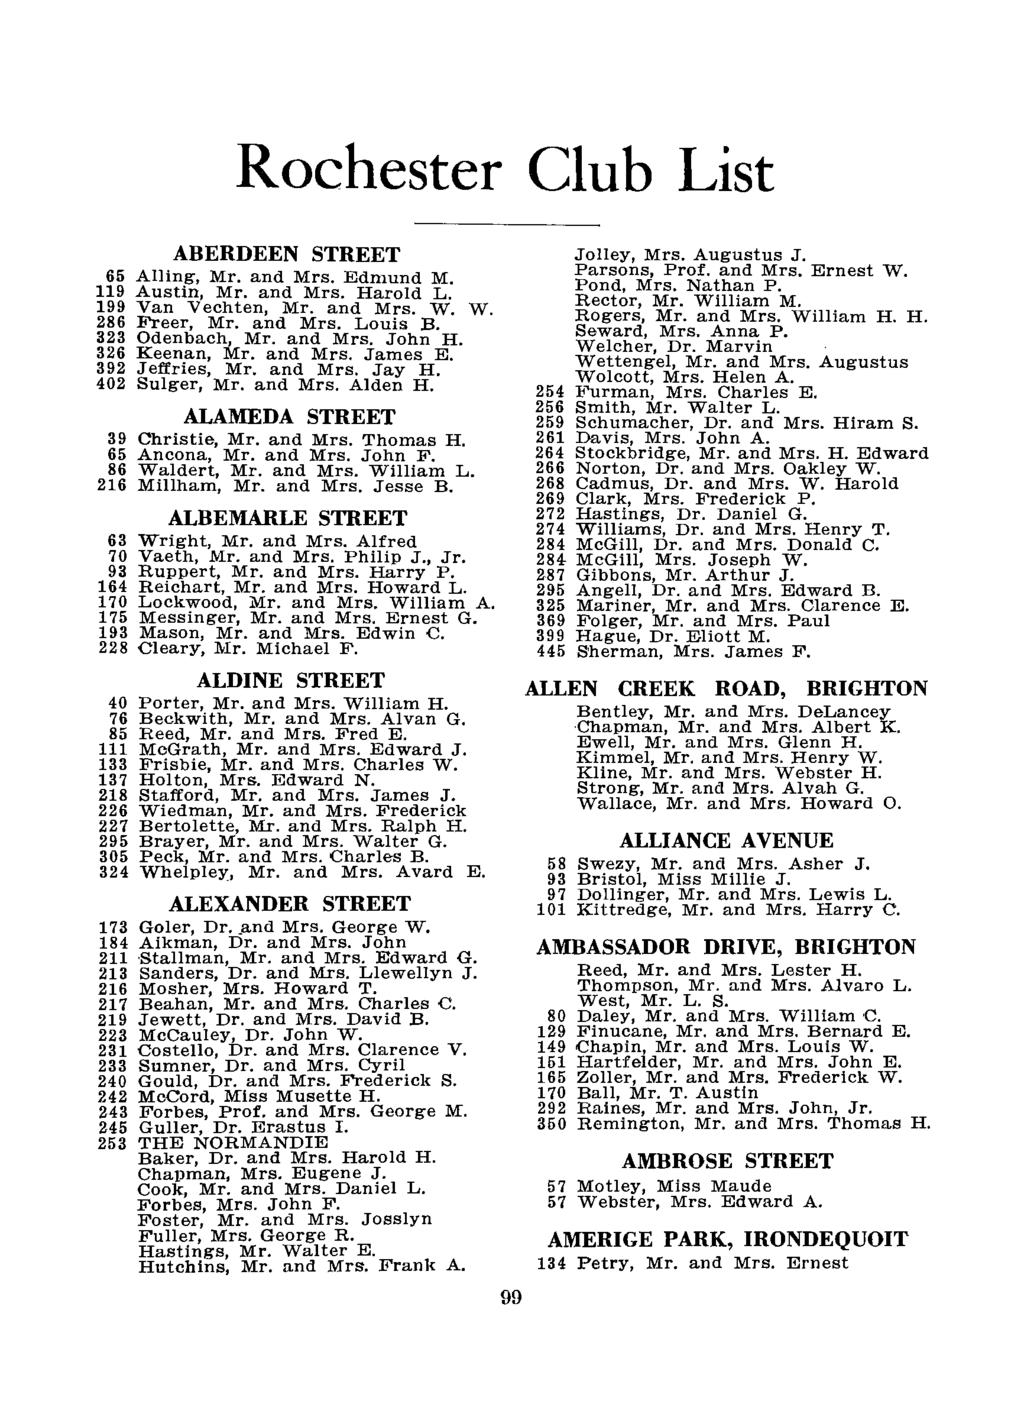 Rochester Club List ABERDEEN STREET 65 Ailing, Mr. and Mrs. Edmund M. 119 Austin, Mr. and Mrs. Harold L. 199 Van Vechten, Mr. and Mrs. W. W. 286 Freer, Mr. and Mrs. Louis B. 323 Odenbach, Mr. and Mrs. John H.